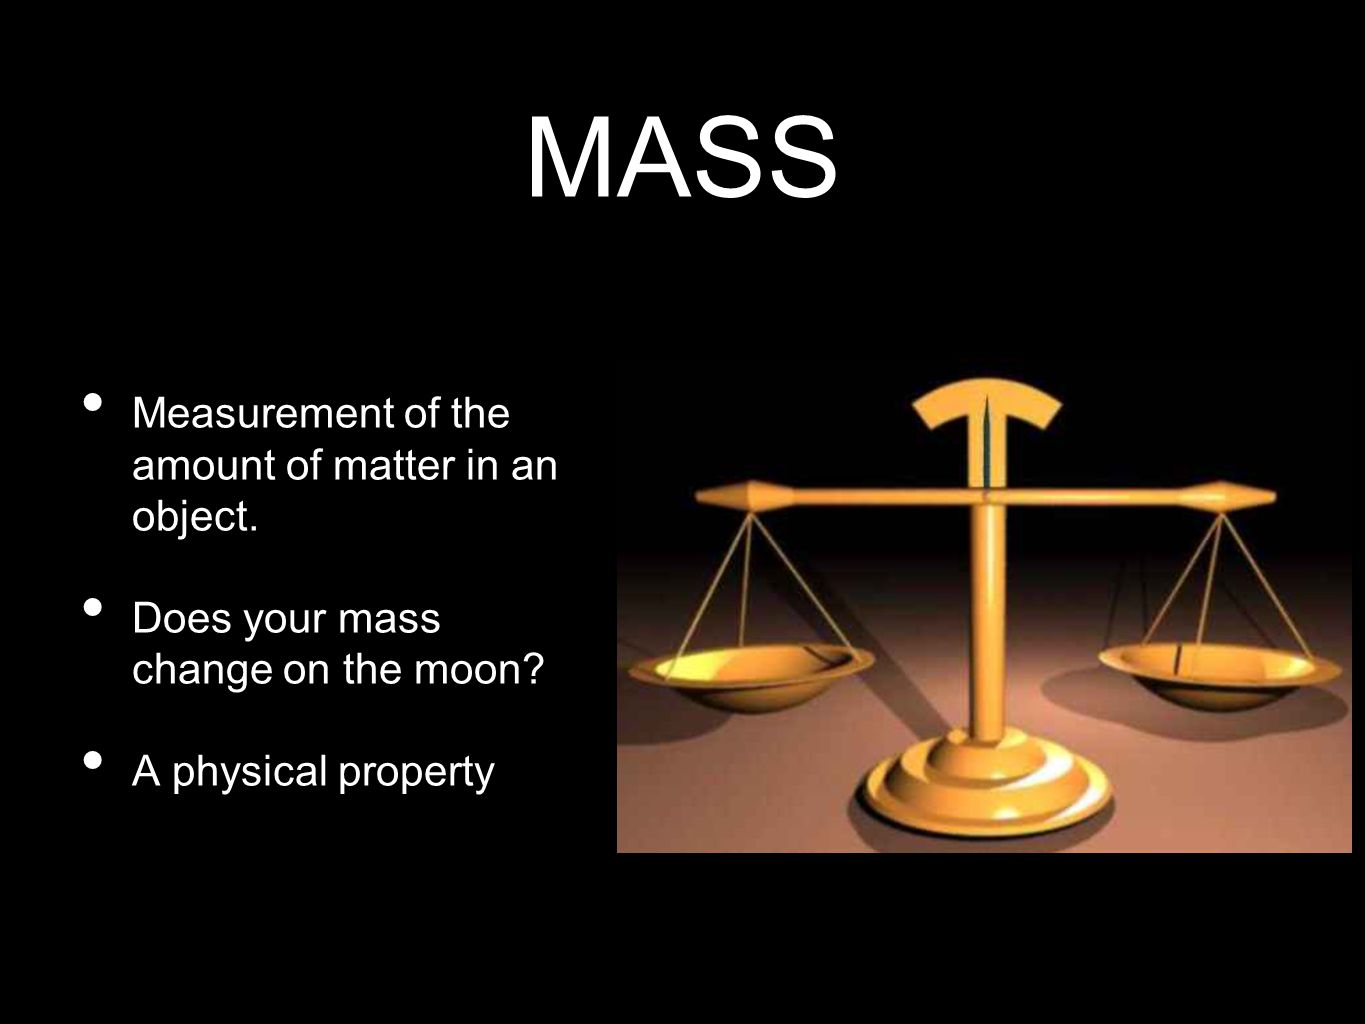 MASS Measurement of the amount of matter in an object.